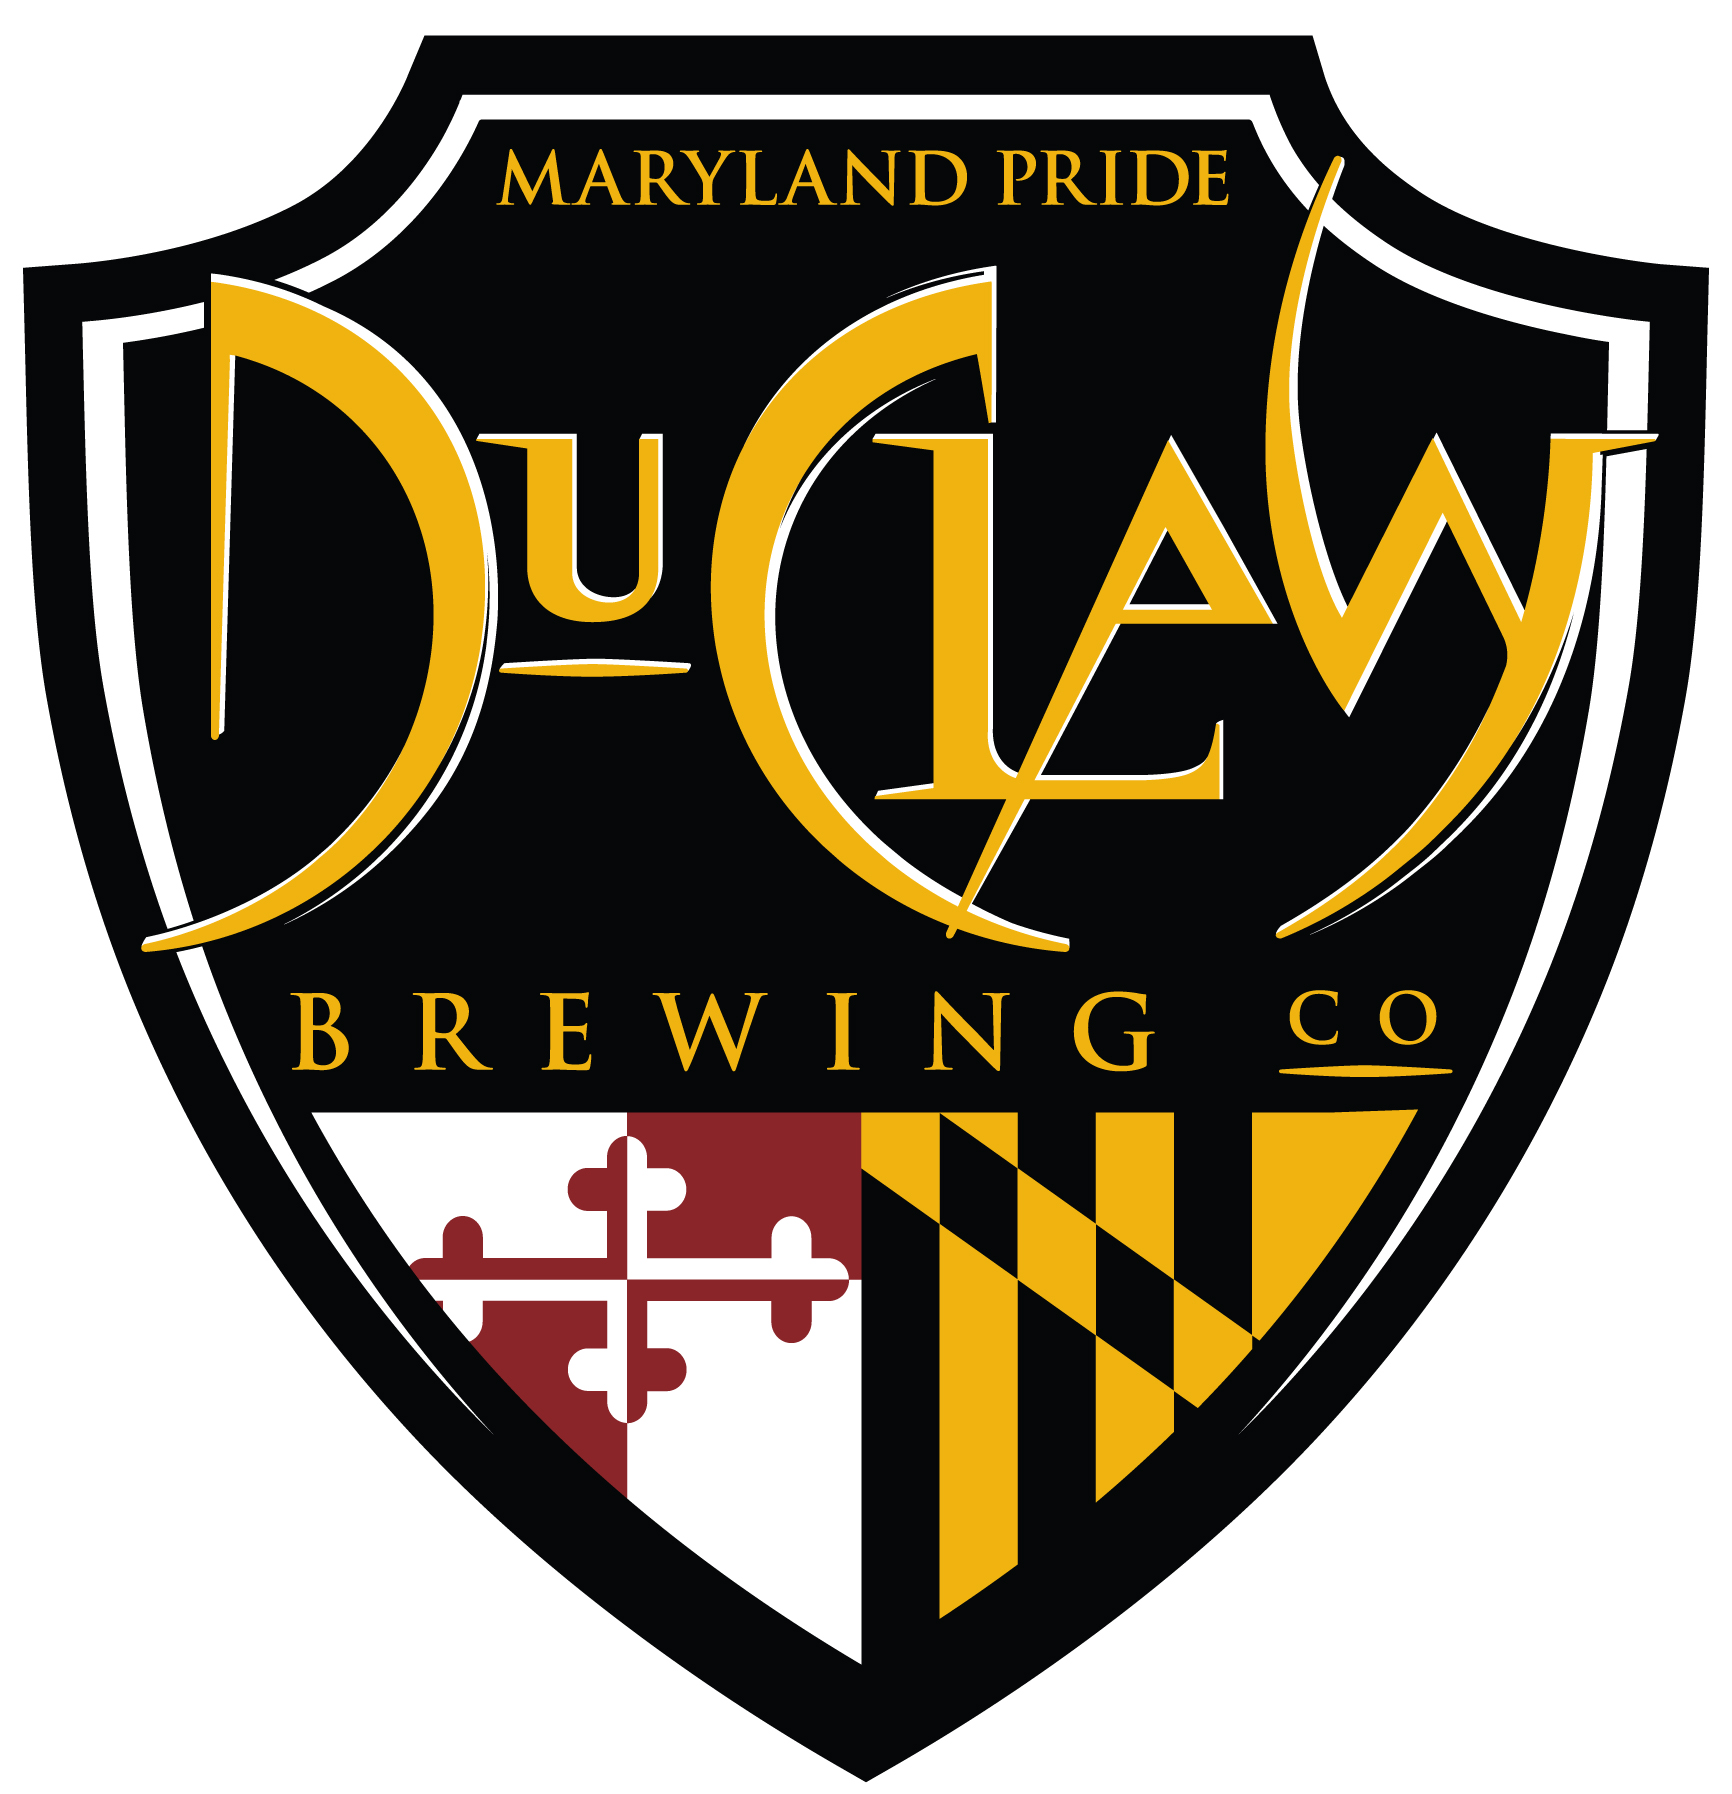 DUCLAW BREWING COMPANY PARTNERS WITH CAVALIER DISTRIBUTING IN FLORIDA